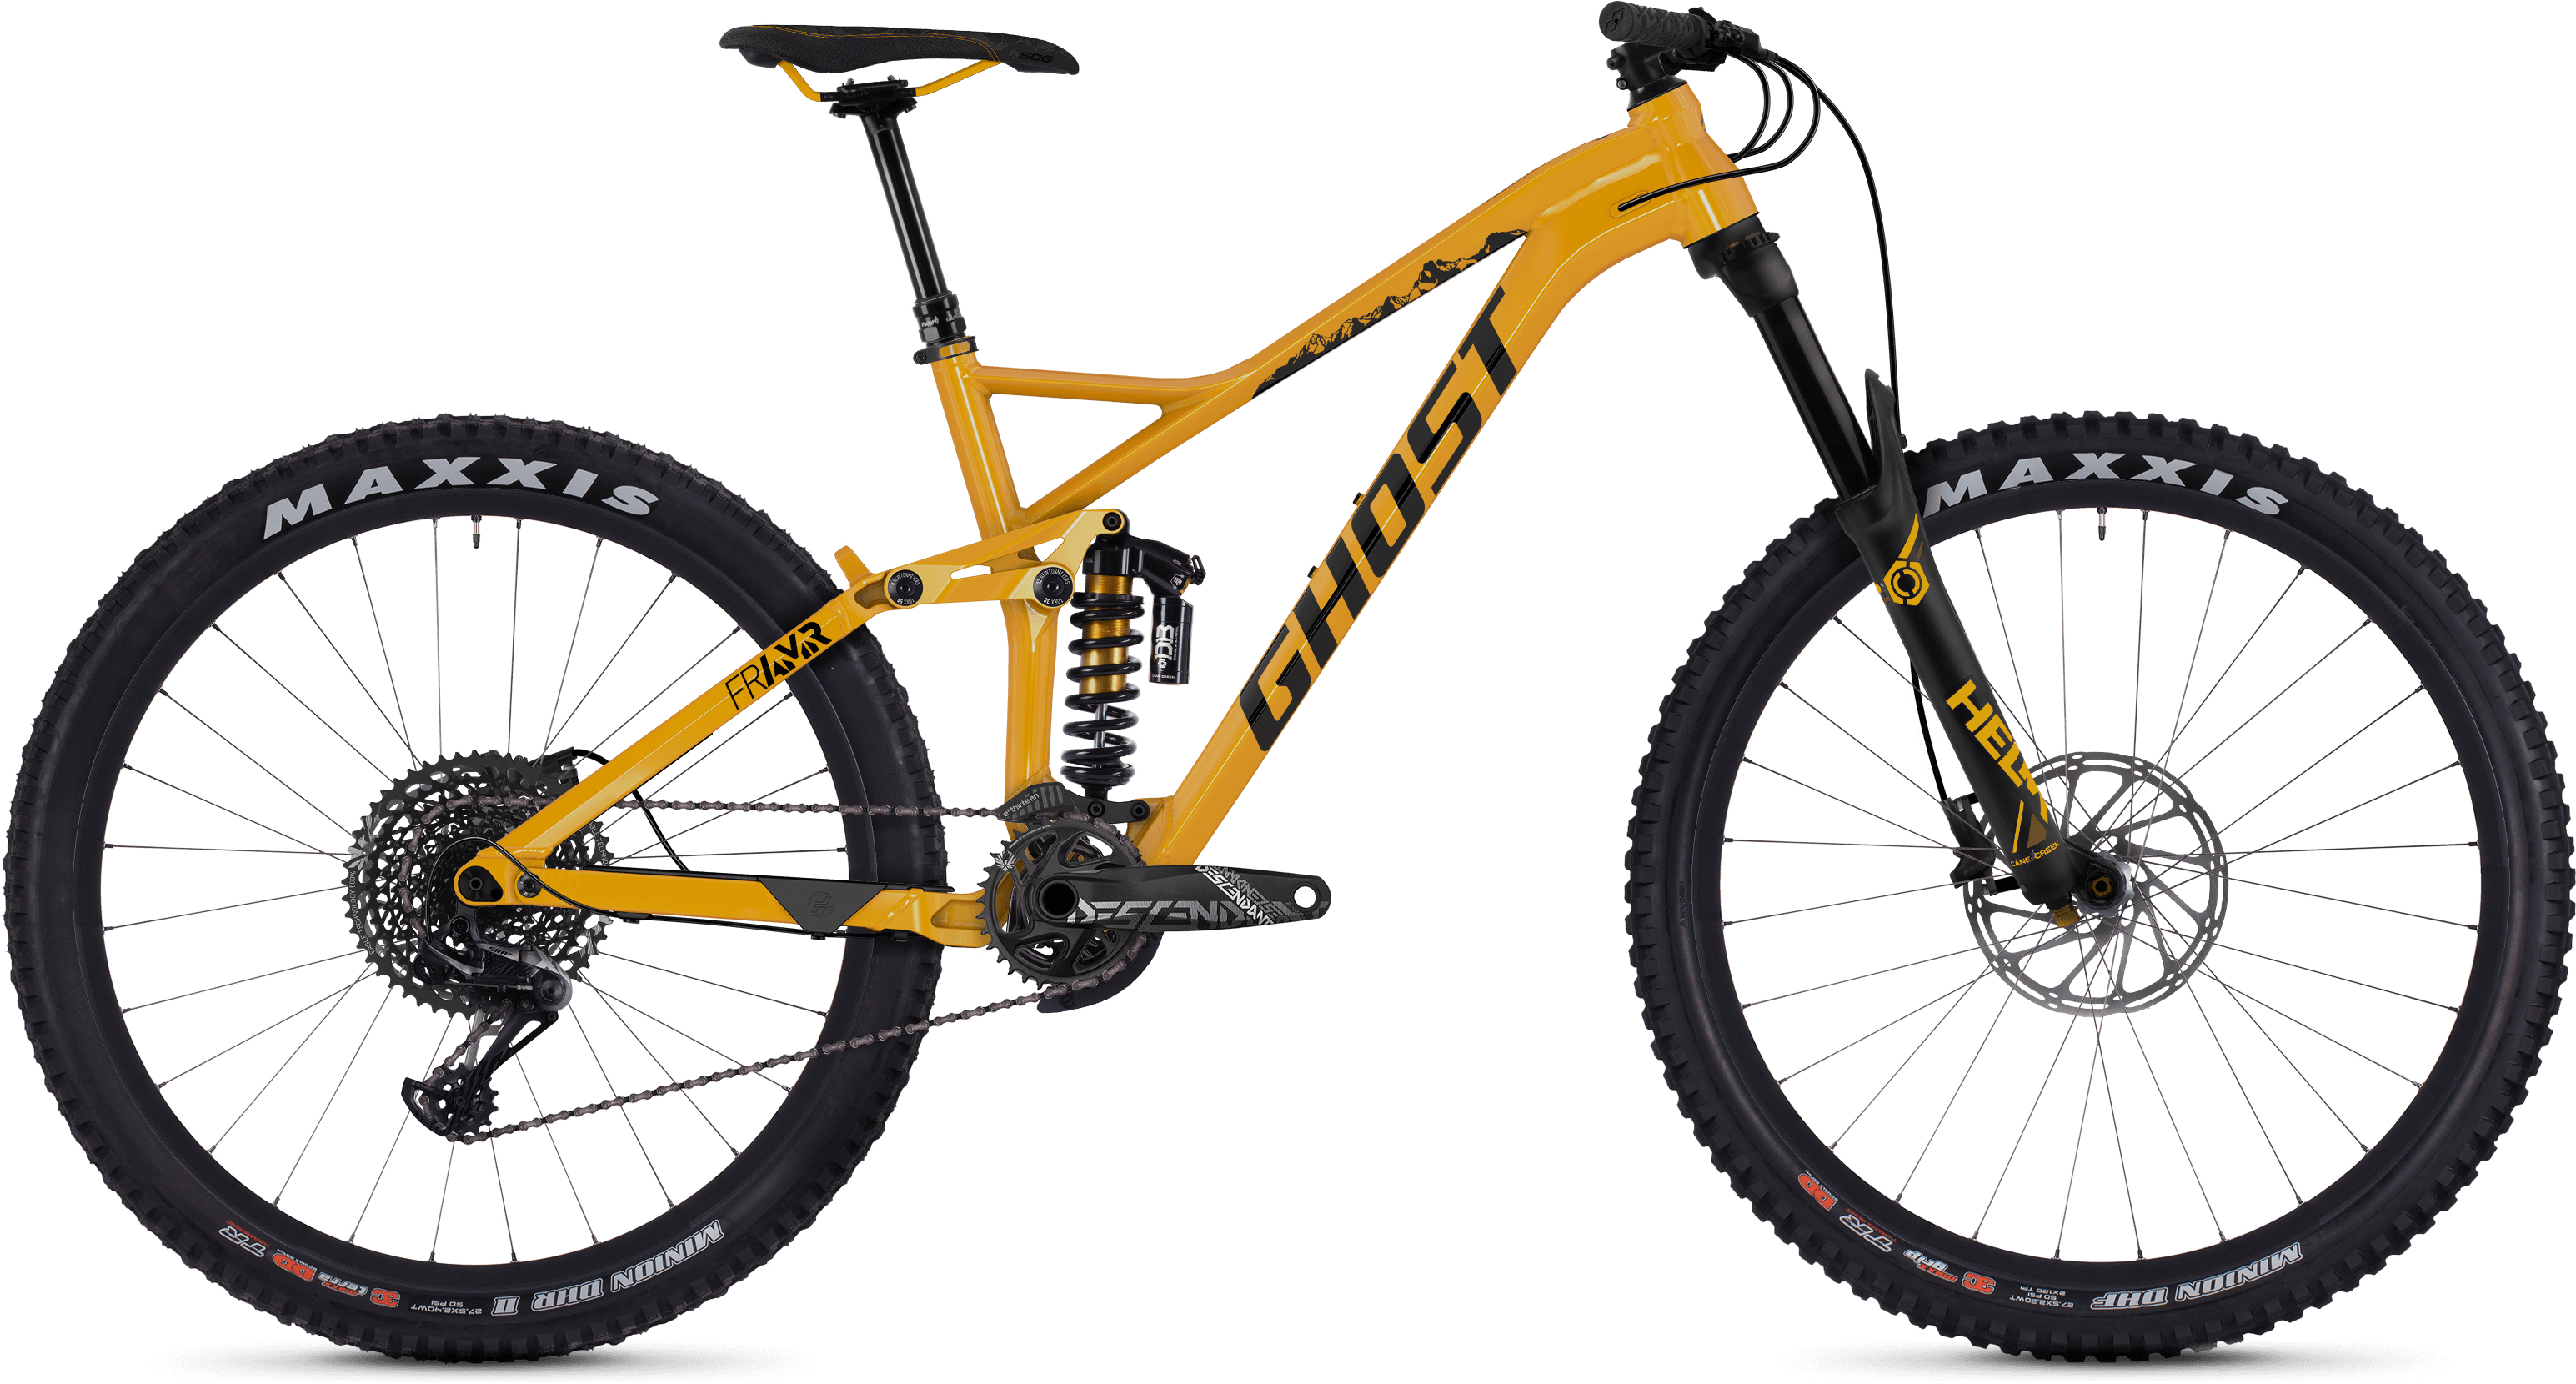 Ghost FR AMR 8.7 Fuldaffjedret mountainbike (2019) - Herre | Mountainbikes